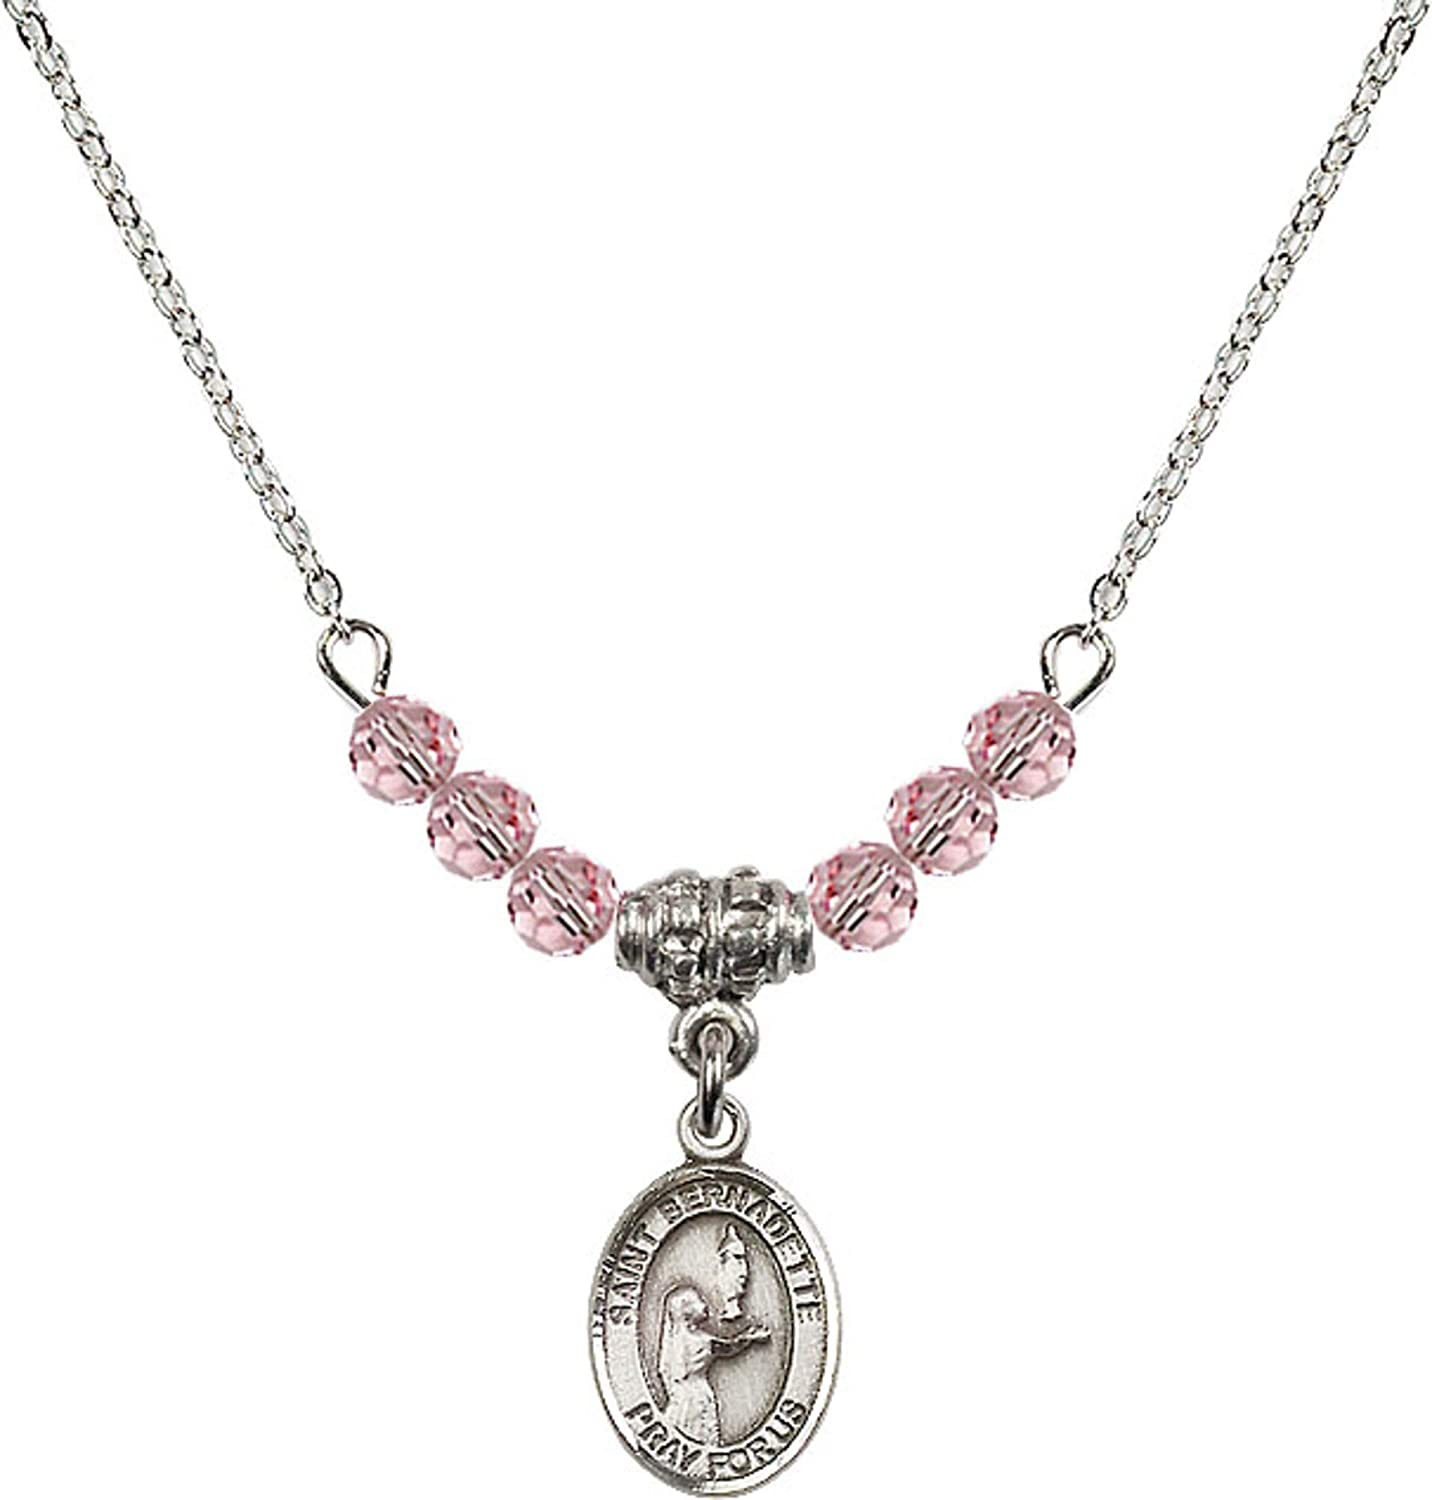 Bonyak Jewelry 18 Inch Rhodium Plated Necklace w// 4mm Light Rose Pink October Birth Month Stone Beads and Saint Bernadette Charm